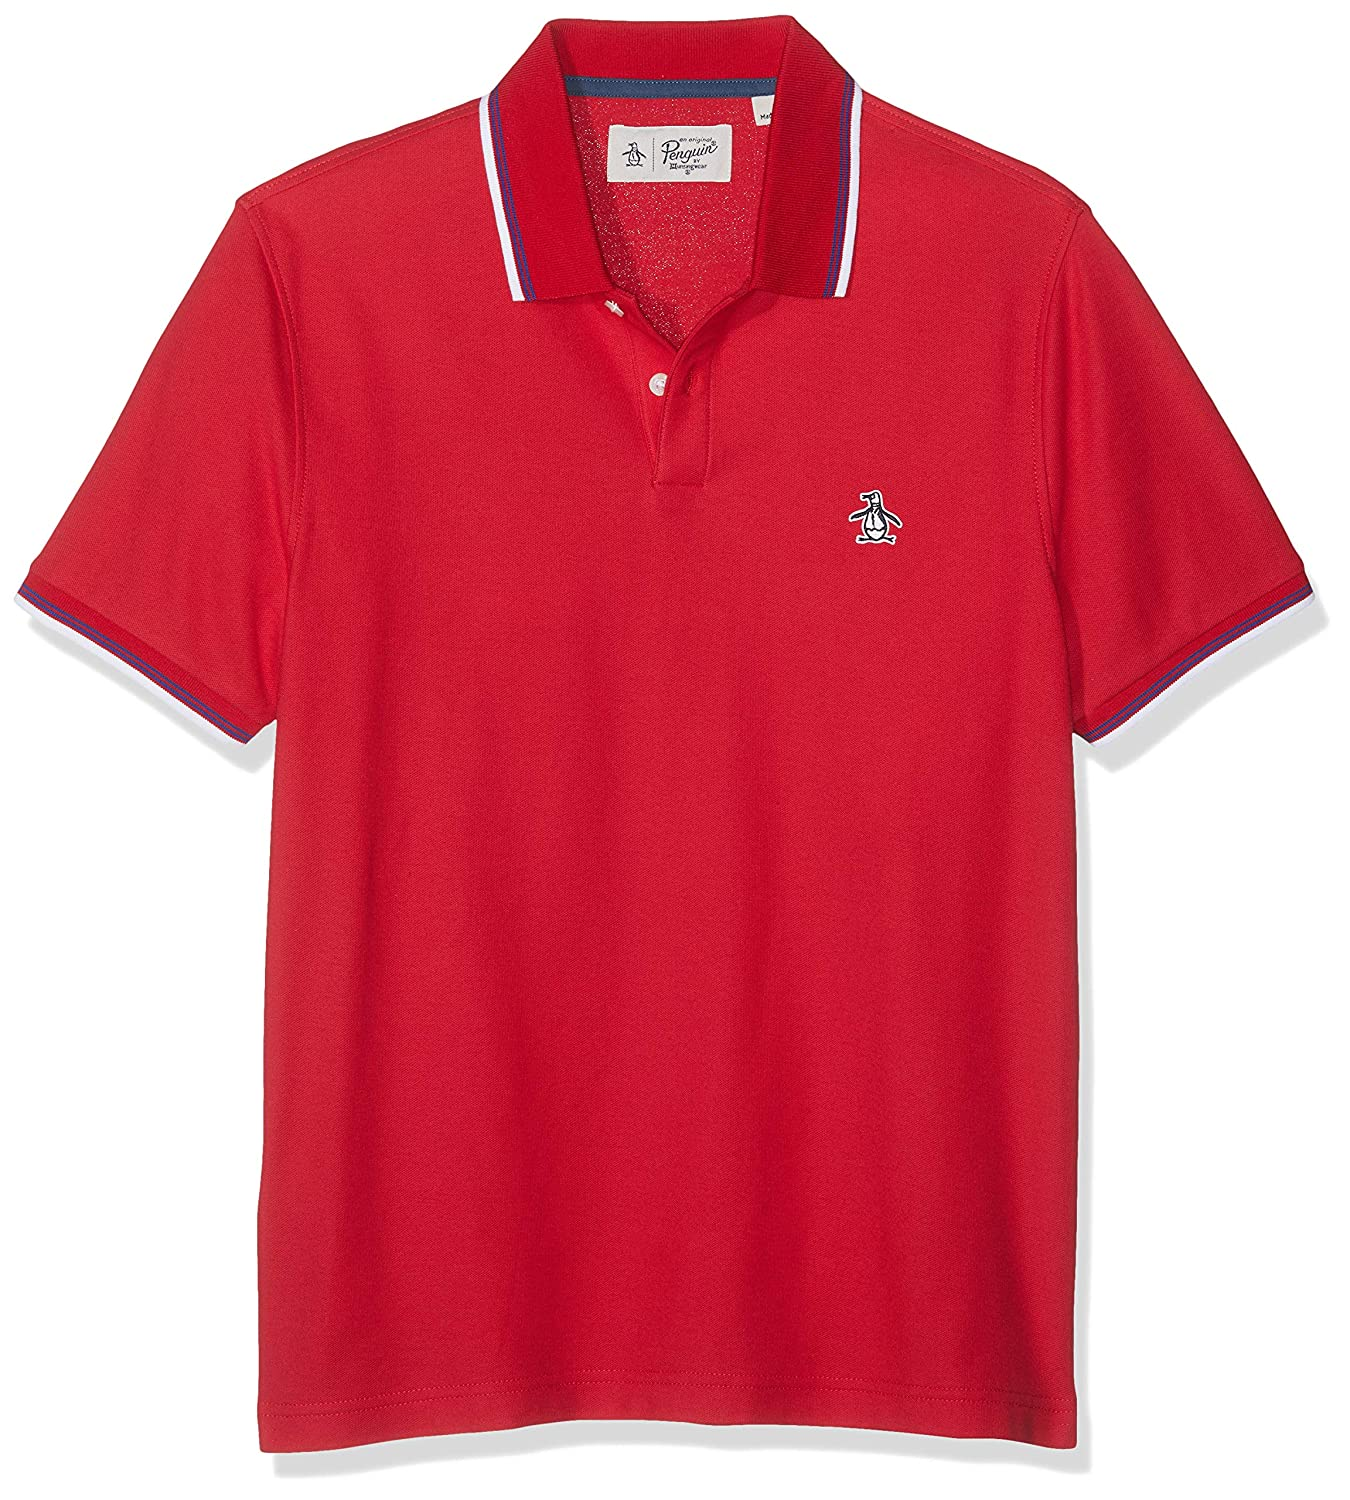 Original Penguin Sticker Pete Tipped 56 Polo, Rojo (Lipstick Red ...